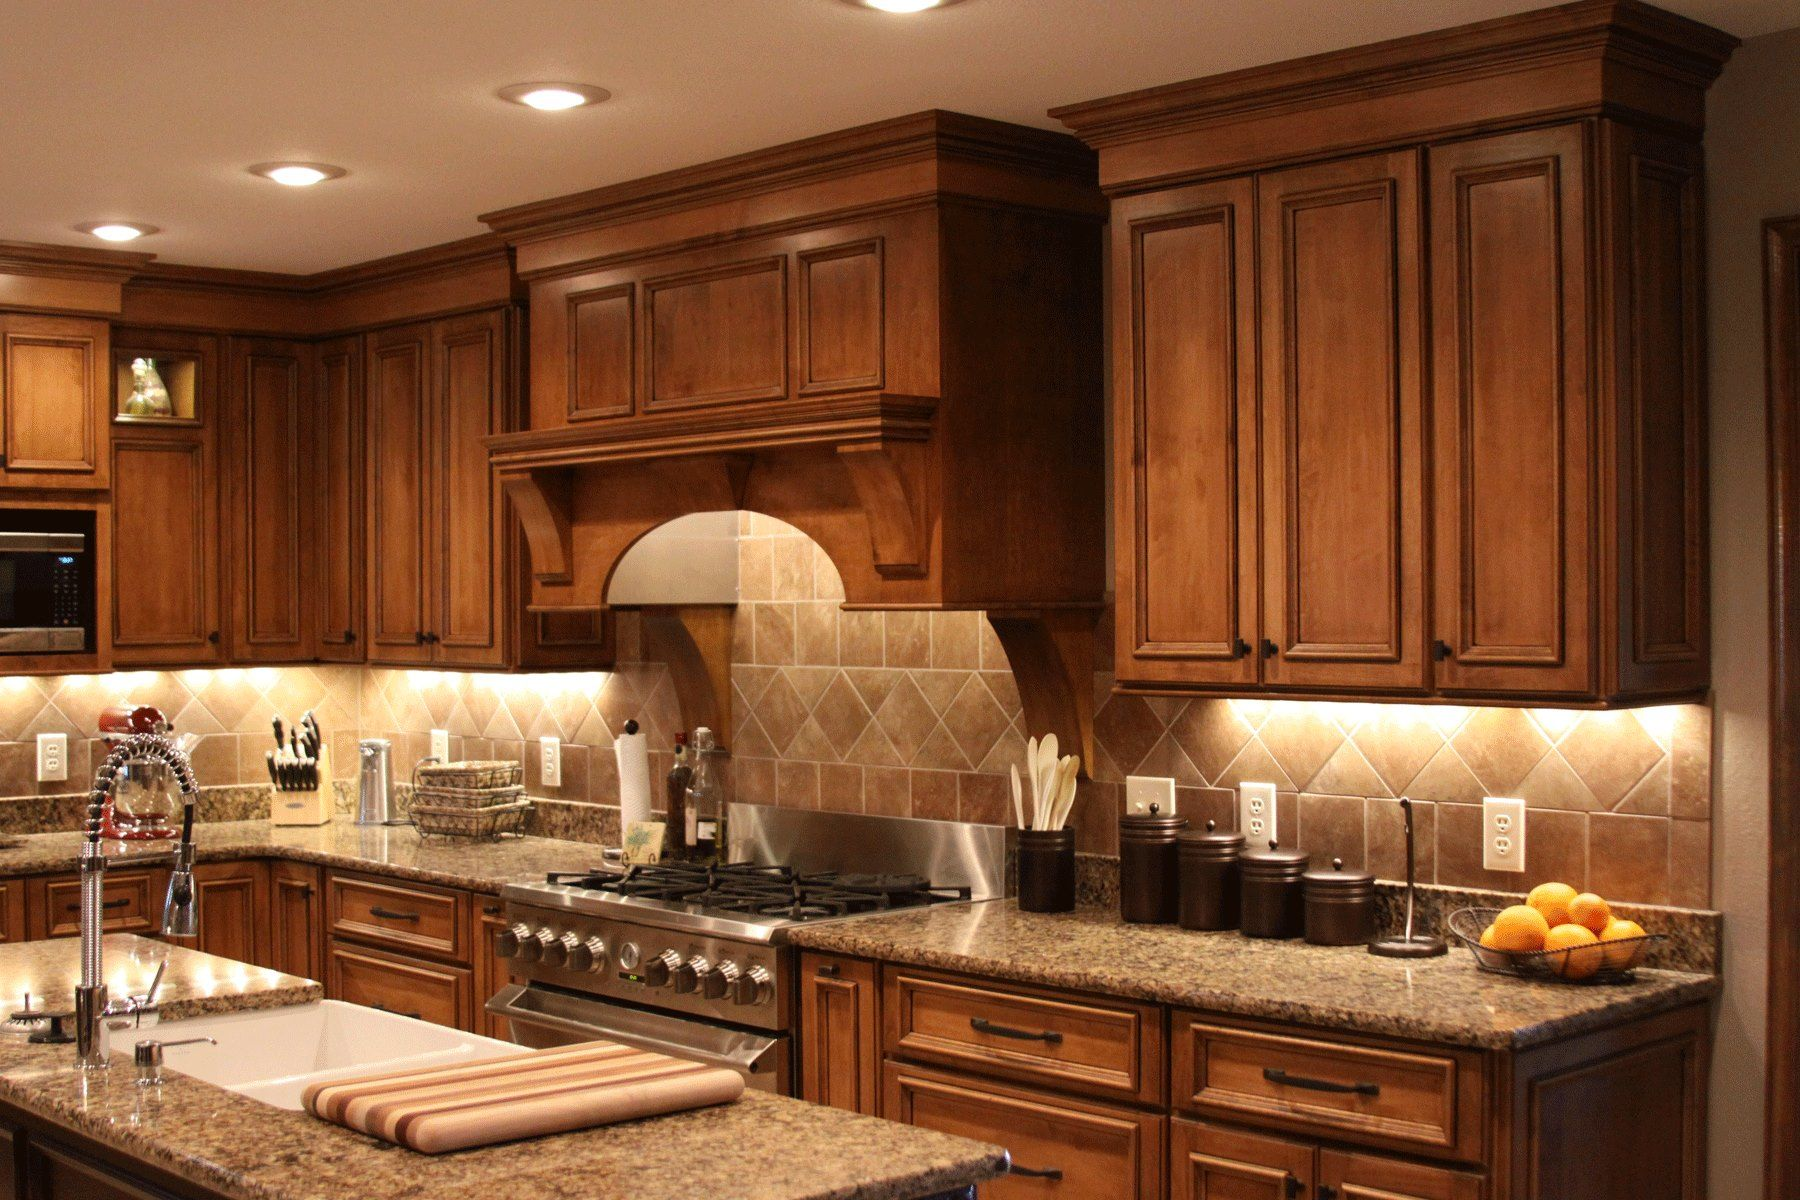 Shiloh S Acorn Maple Cabinetry With Black Glaze Creates A Warm And Inviting Kitchen Recessed Under Cabinet Lights Illuminate The Room Improve Function